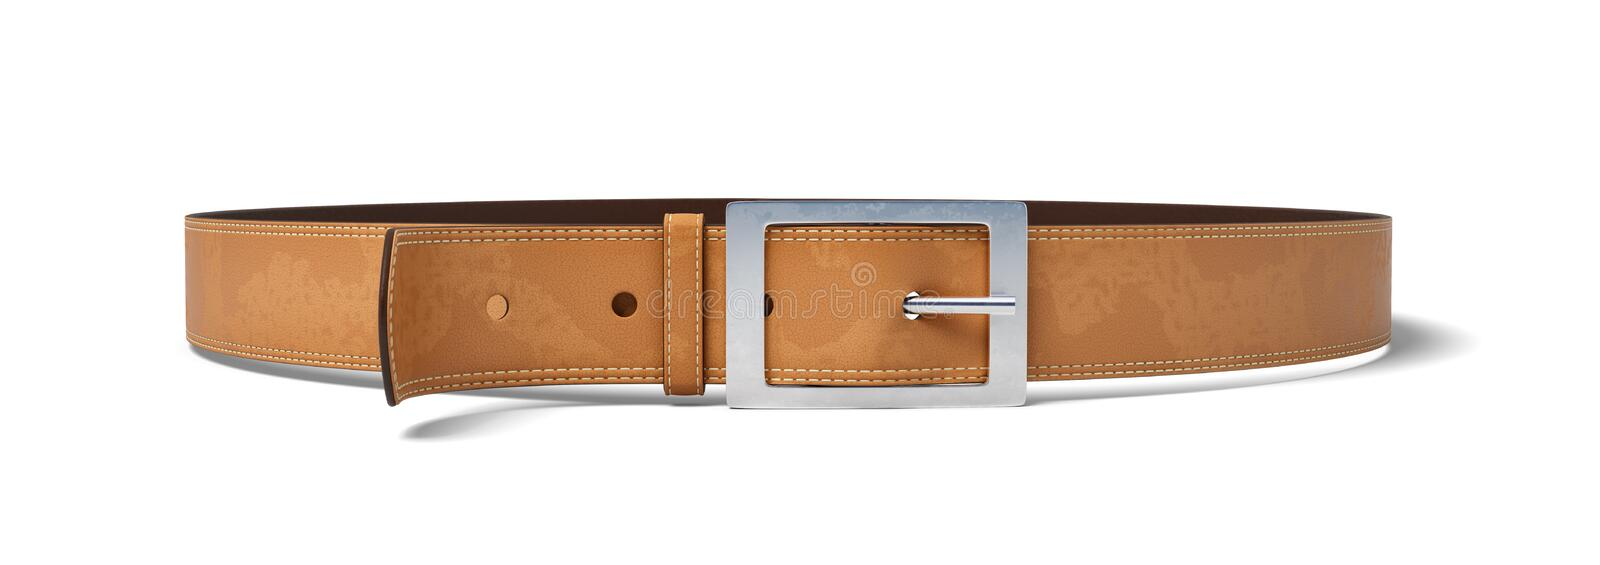 3d rendering of a buckled brown leather belt lying on a white background. stock photos